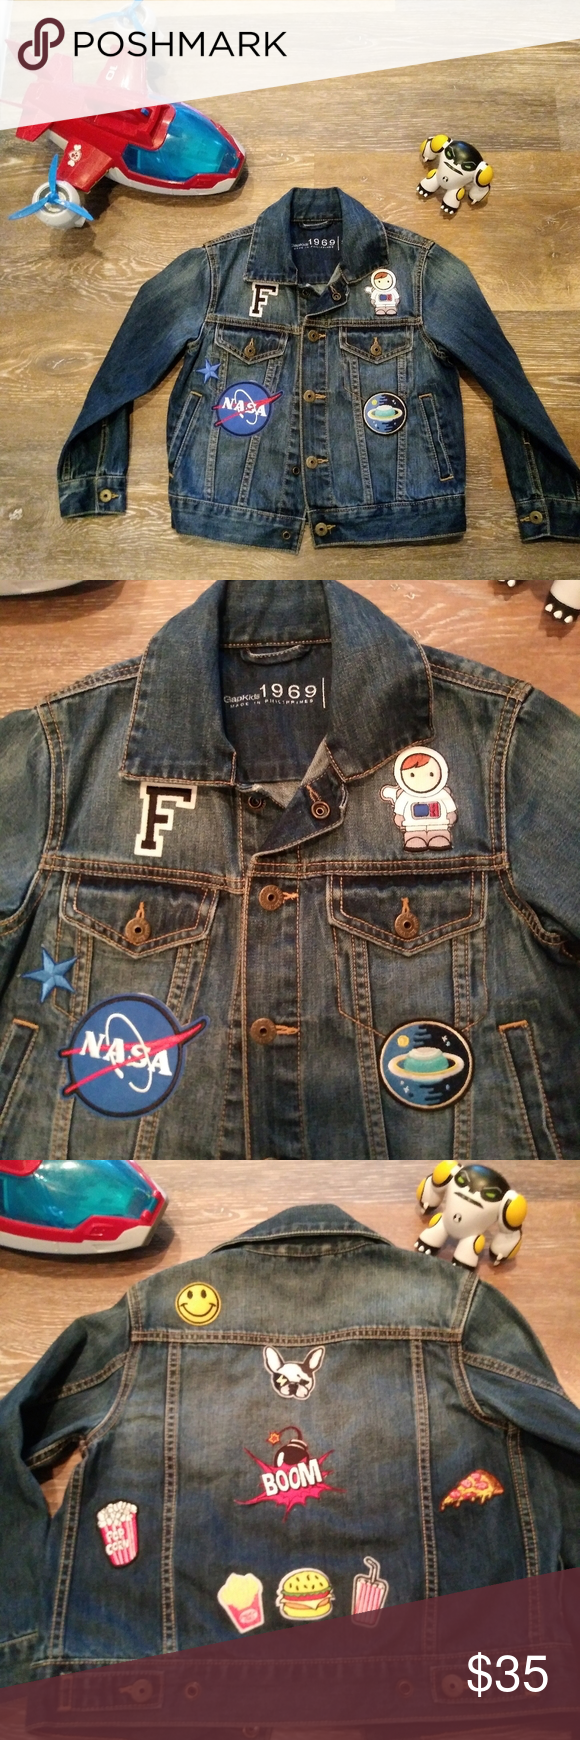 Gap Kids Denim Jacket Decorated With Patches Kids Denim Jacket Nasa Clothes Kids Denim [ 1740 x 580 Pixel ]